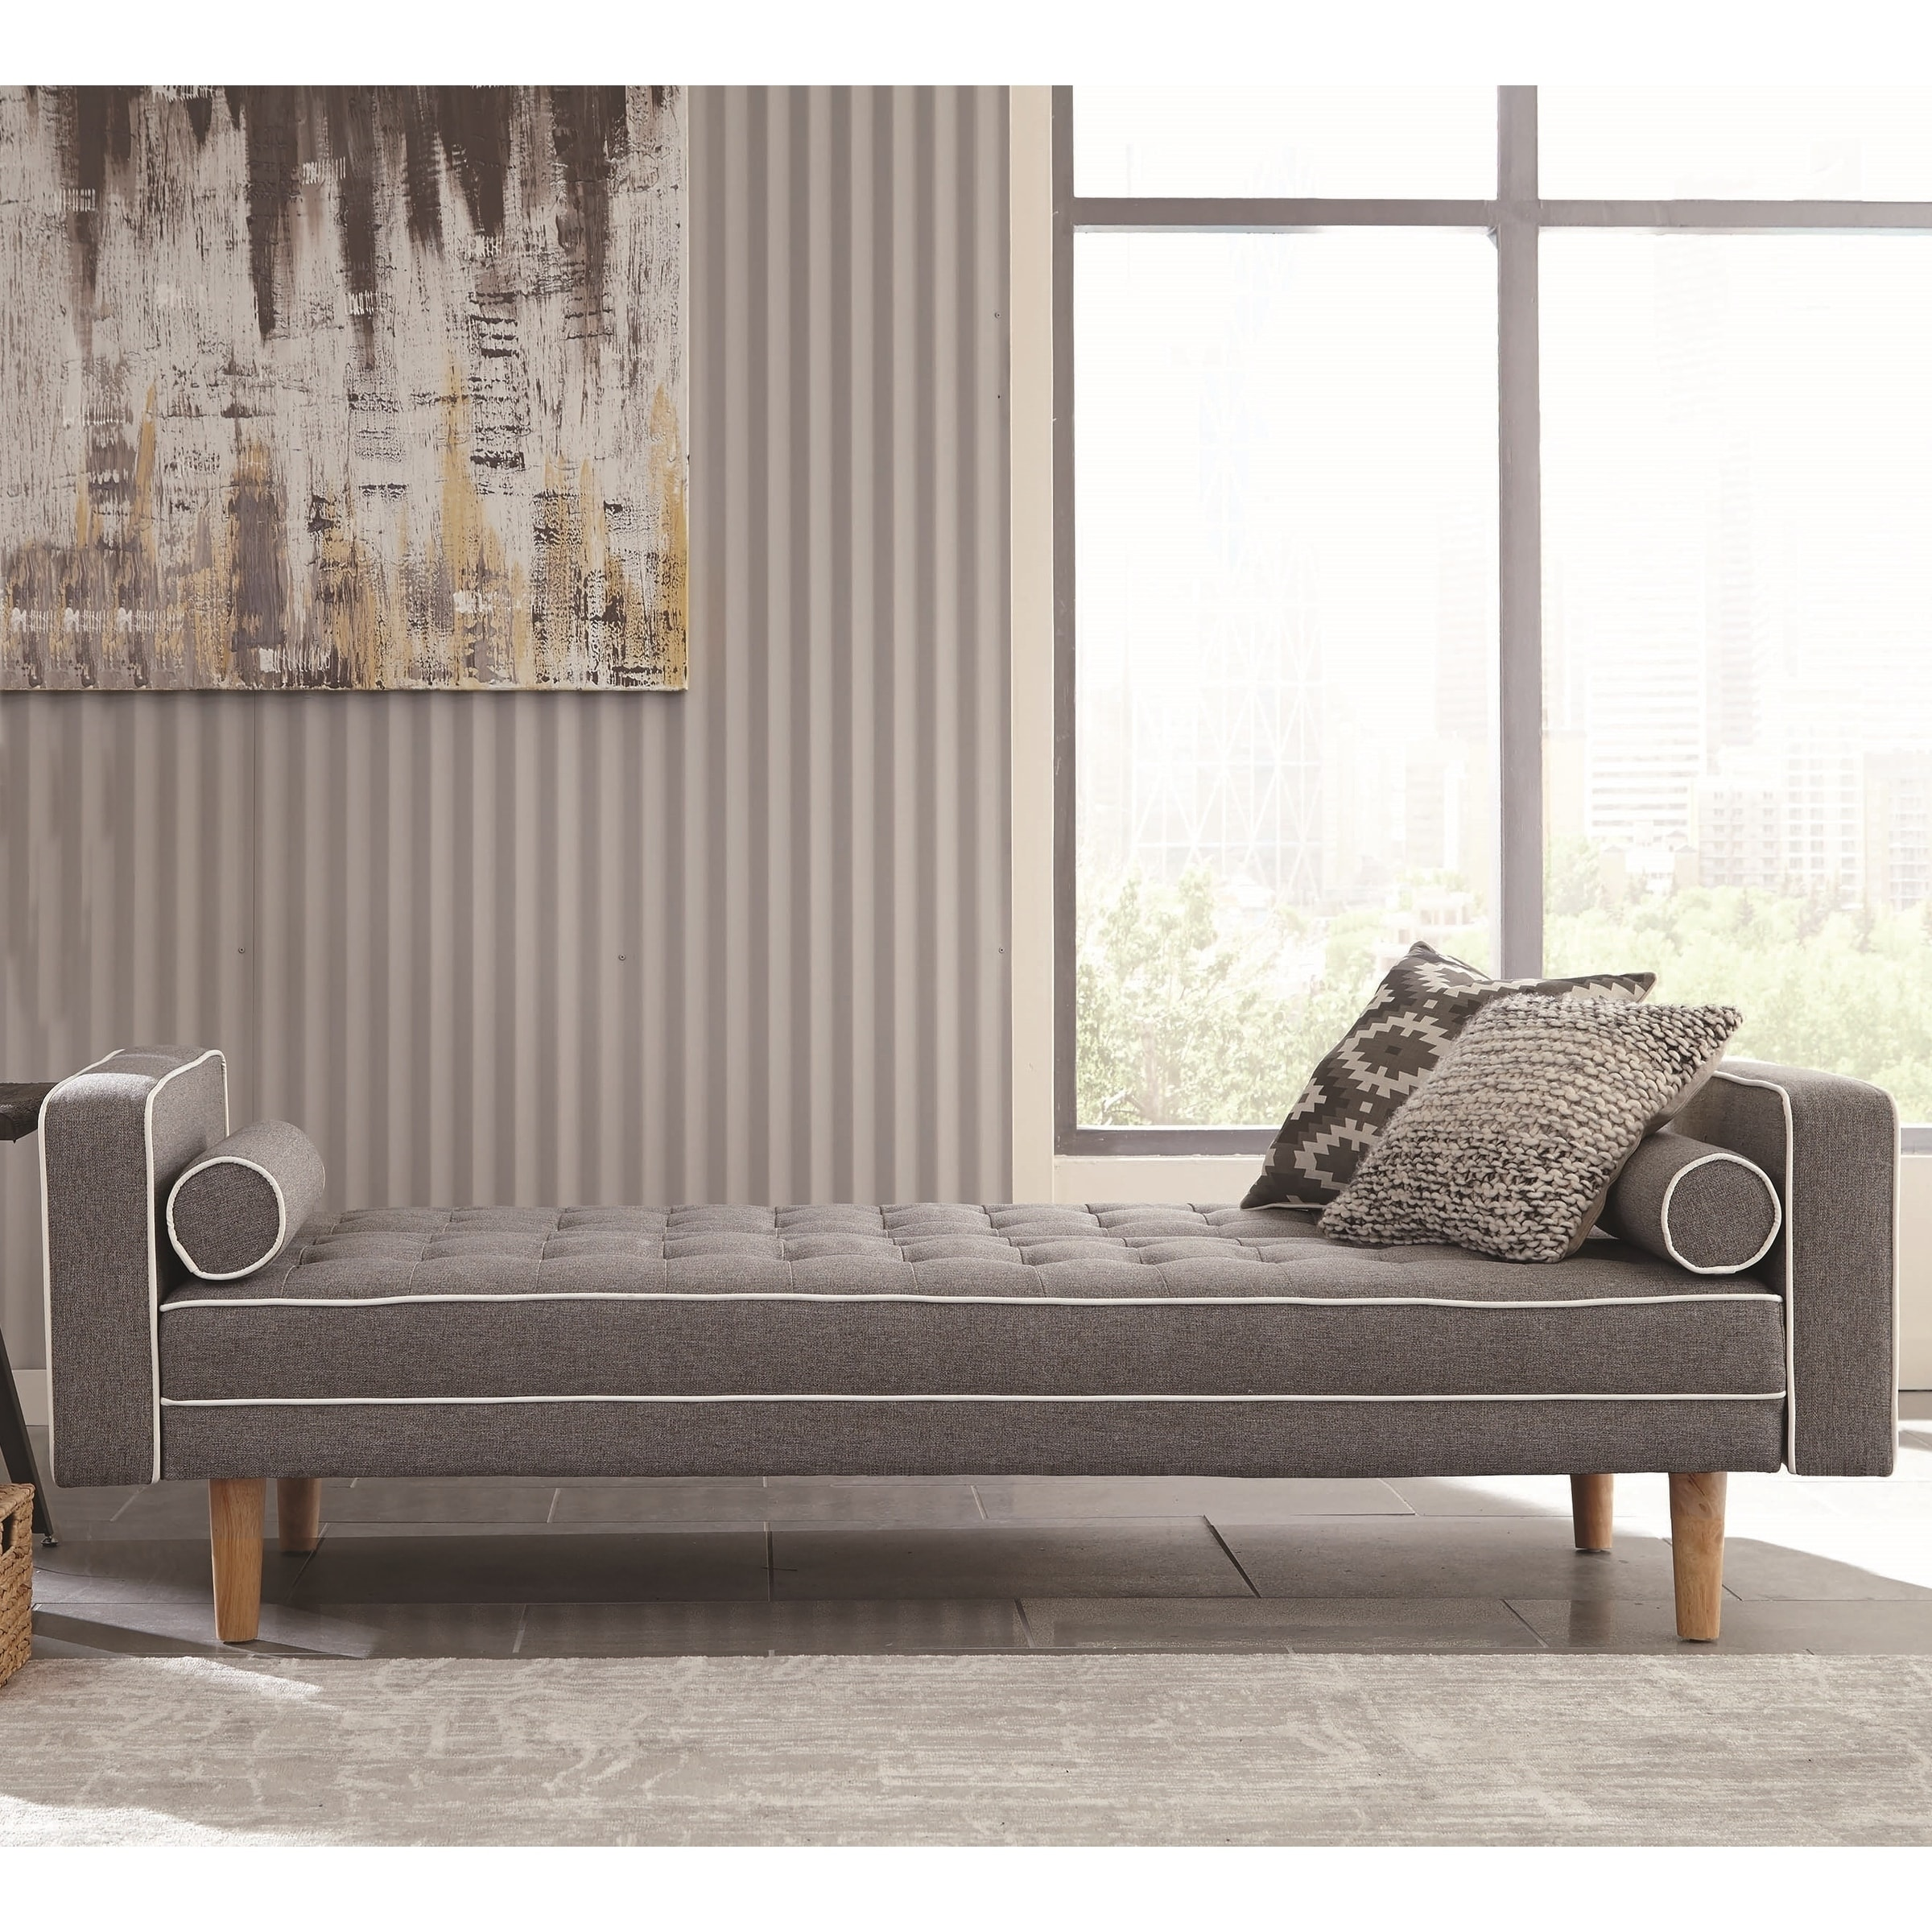 Awe Inspiring Modern Design Grey Button Tufted Sofa Bed Sleeper With White Piping Machost Co Dining Chair Design Ideas Machostcouk